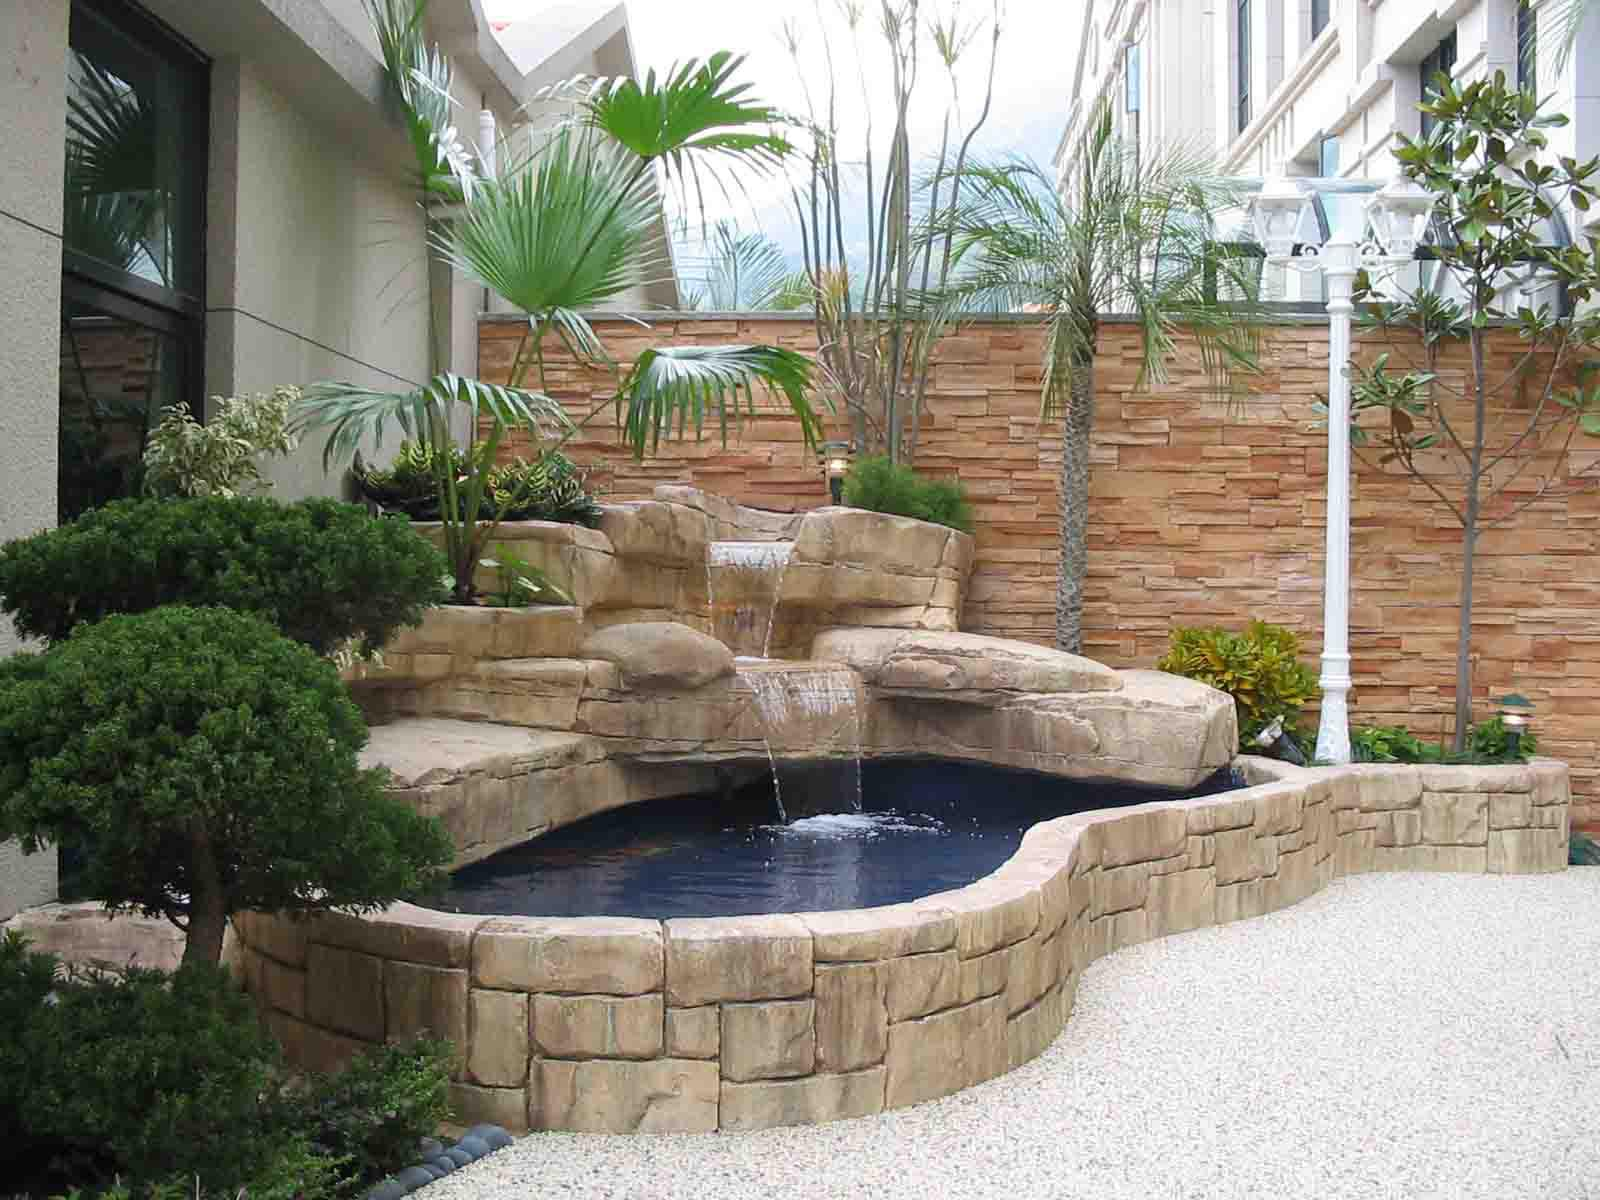 Fish pond garden design backyard design ideas for Outside fish pond ideas